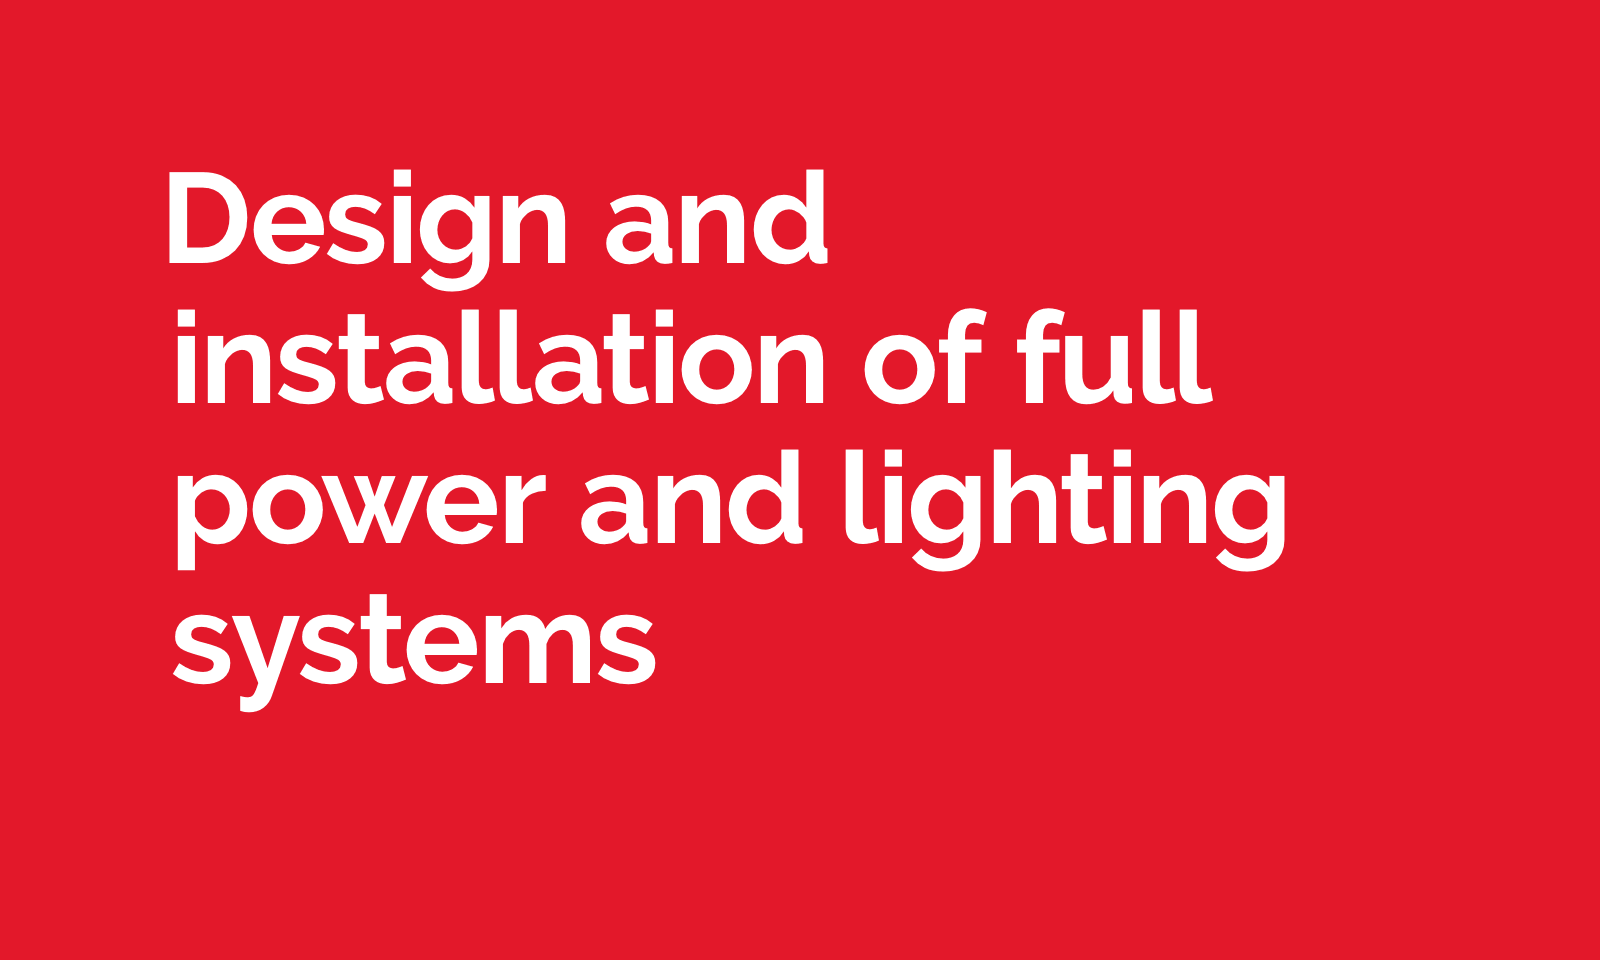 Design and installation of full power and lighting systems